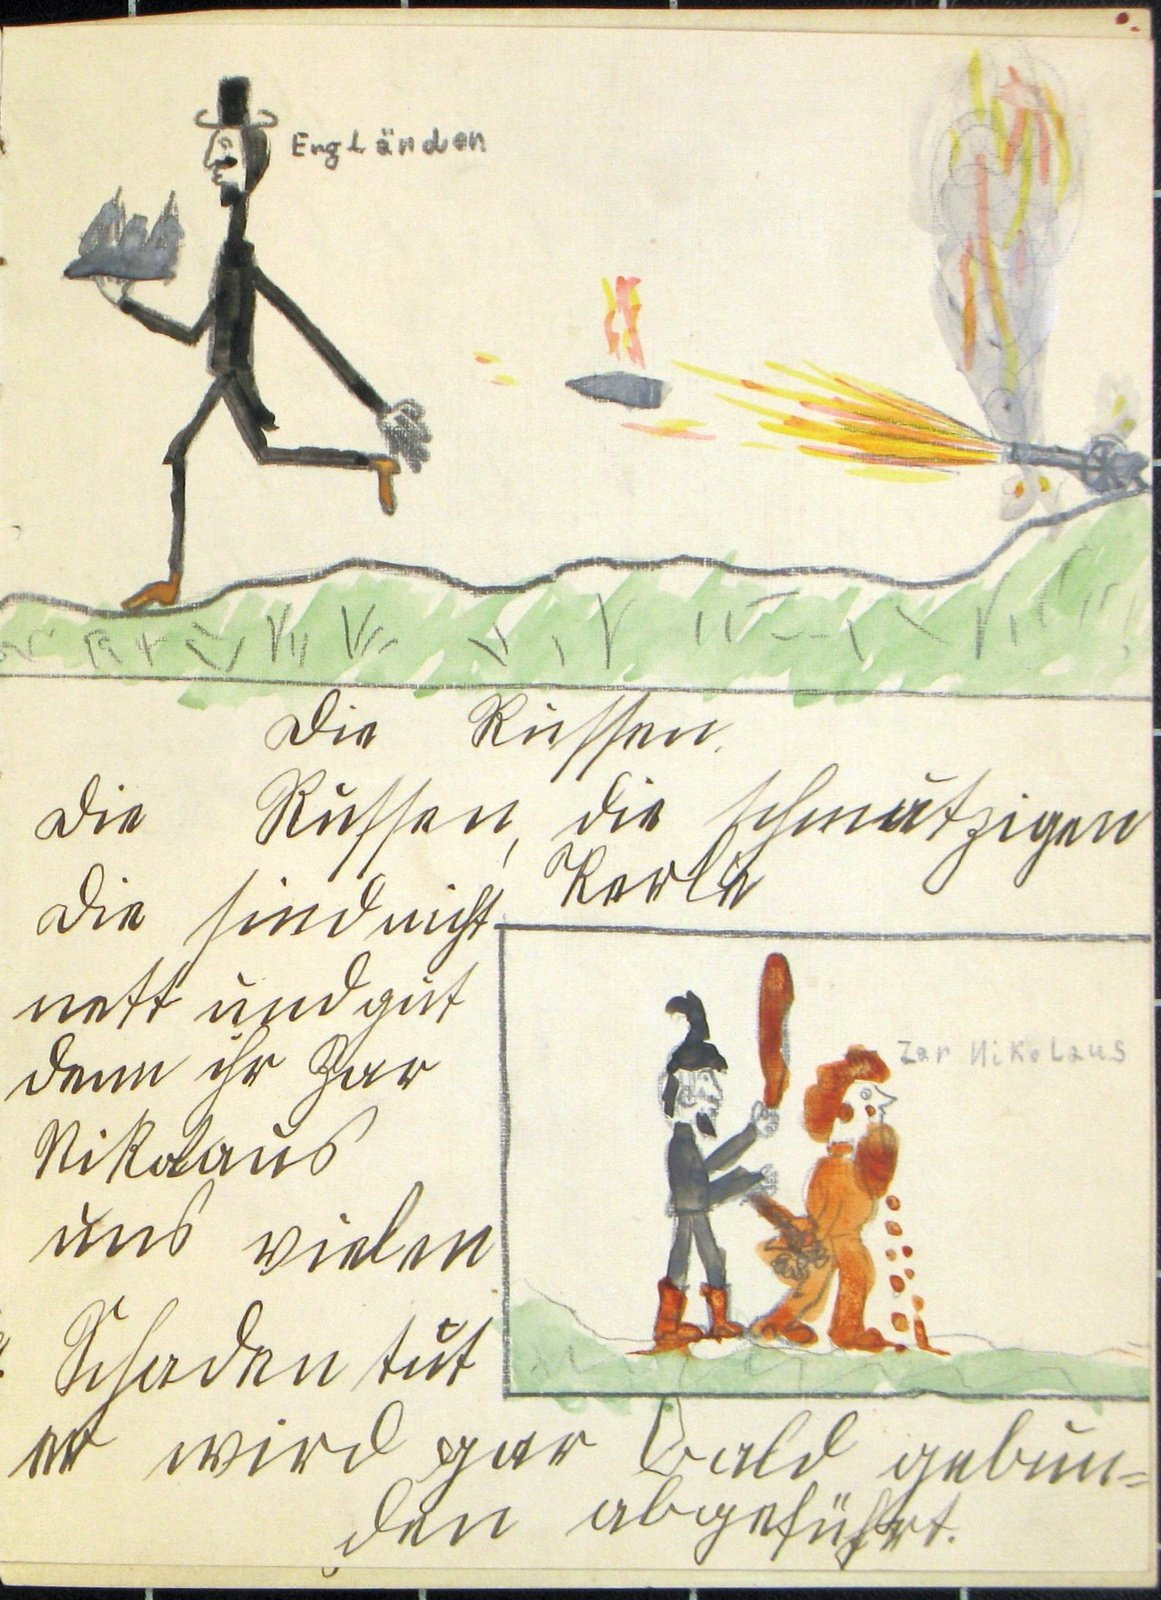 Englishman running away from cannon fire, H. und F. Koepke, Europeana 1914-1918 / Dr. Achim Bonte, CC BY-SA